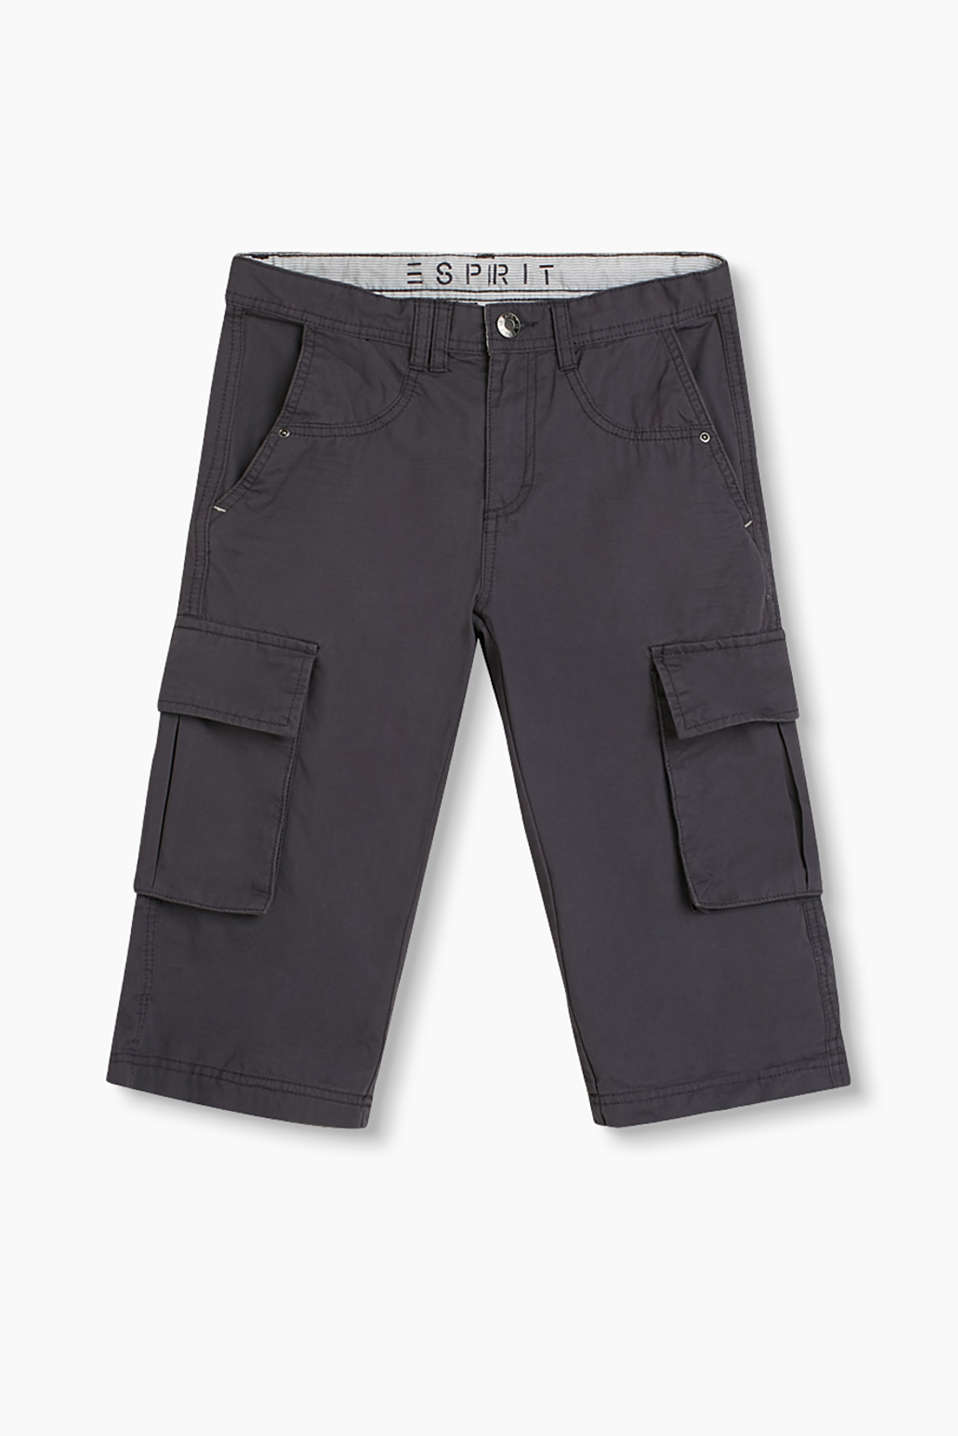 Calf-length trousers in a sporty style with bellows pockets at knee-height